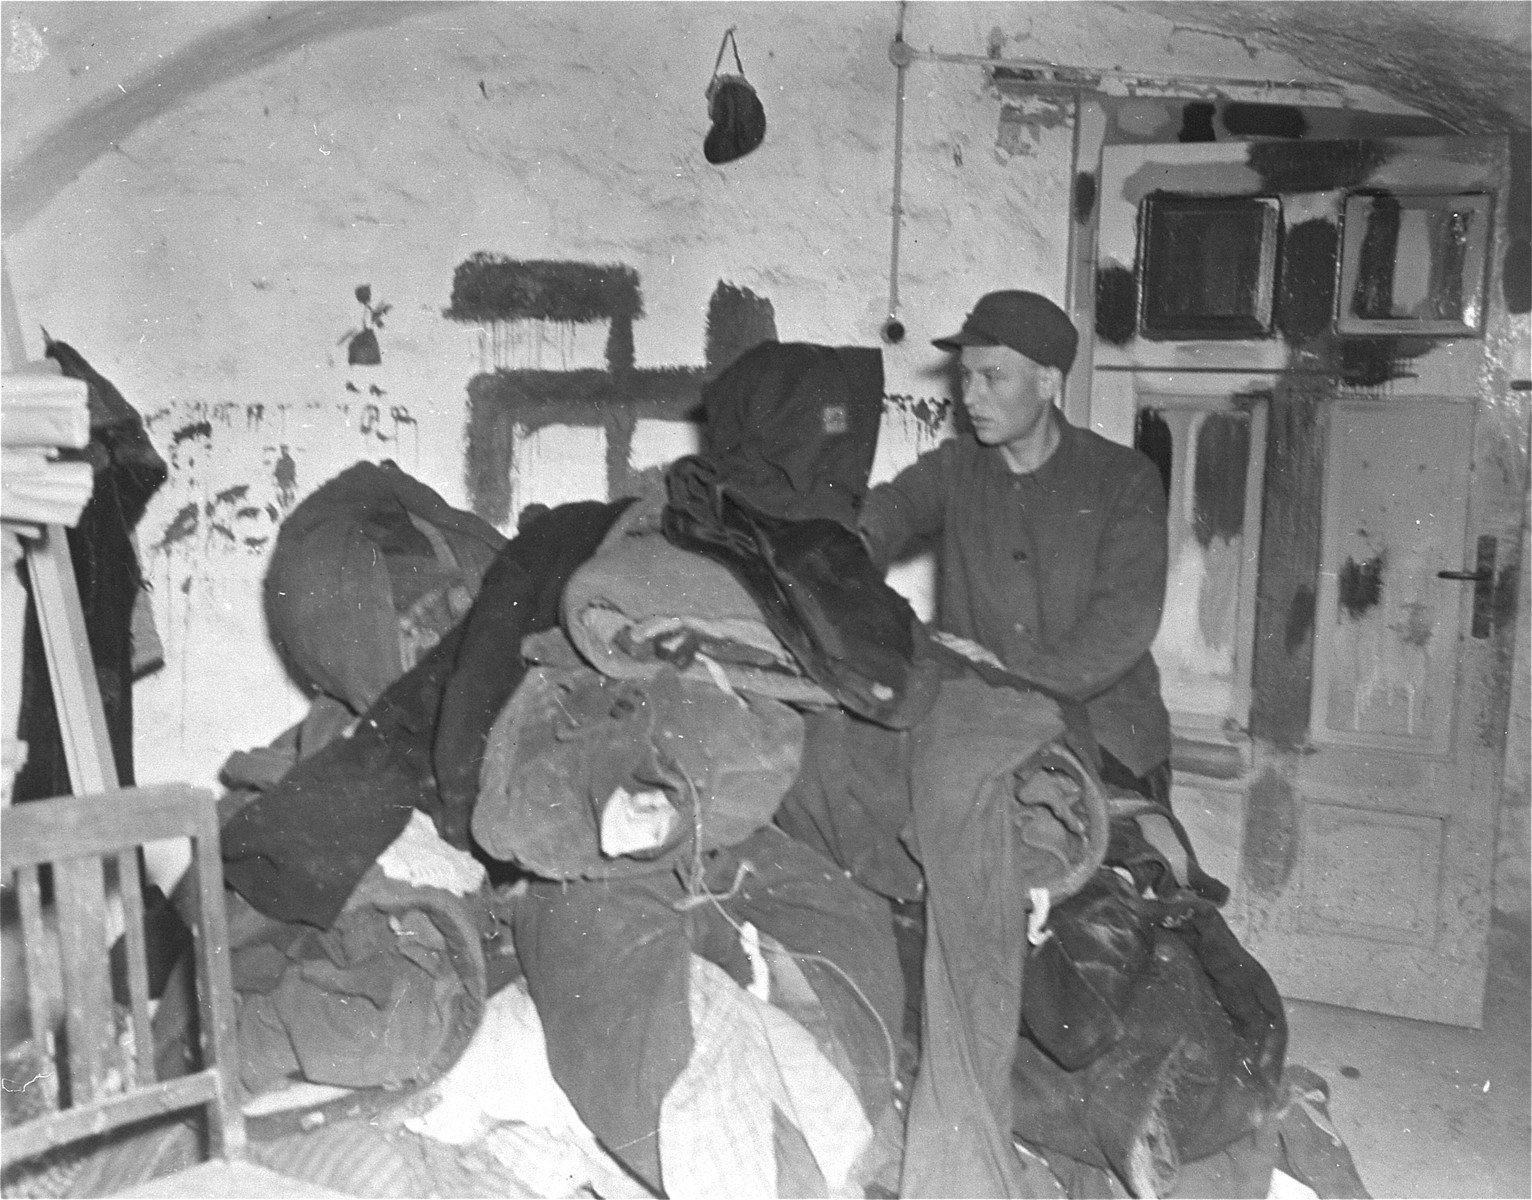 A survivor of the Hadamar Institute shows war crimes investigators a uniform belonging to a Polish prisoner that he has plucked from a pile of clothing removed from victims of the euthanasia killings.  Pictured is 30-year-old Frita Dickmann. The photograph was taken by an American military photographer soon after the liberation.